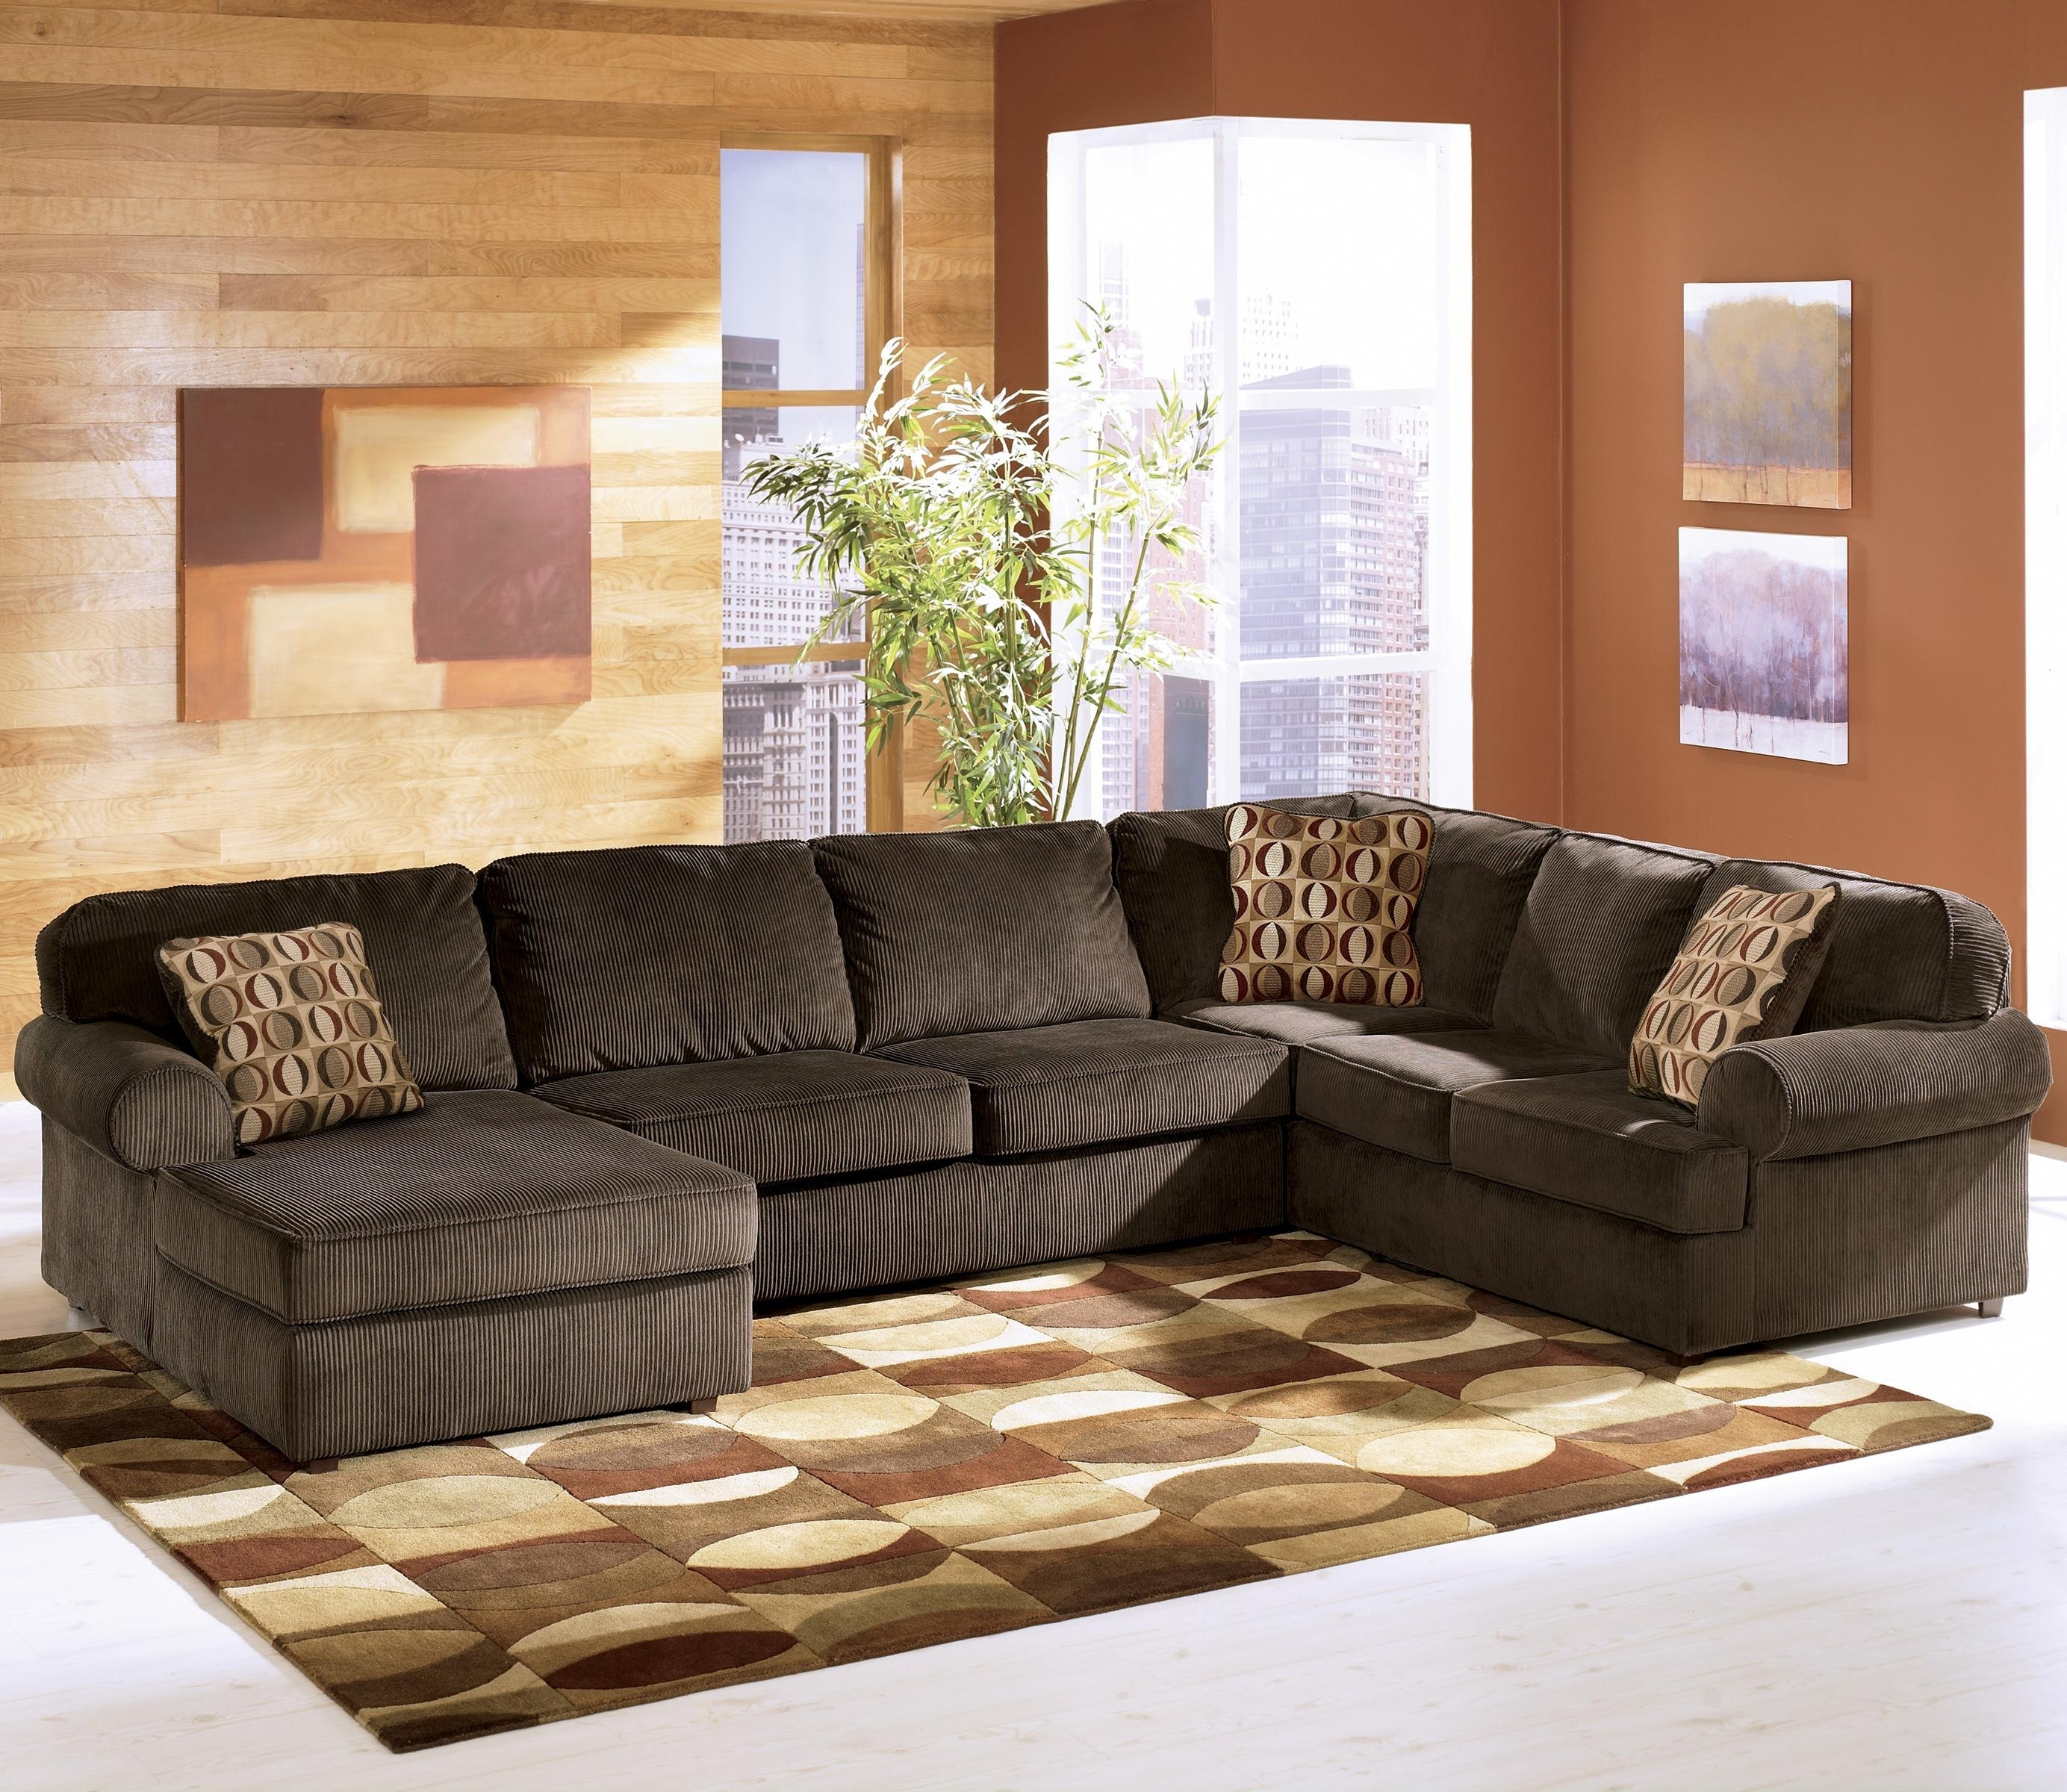 Ashley Furniture Regarding Lubbock Sectional Sofas (View 1 of 20)